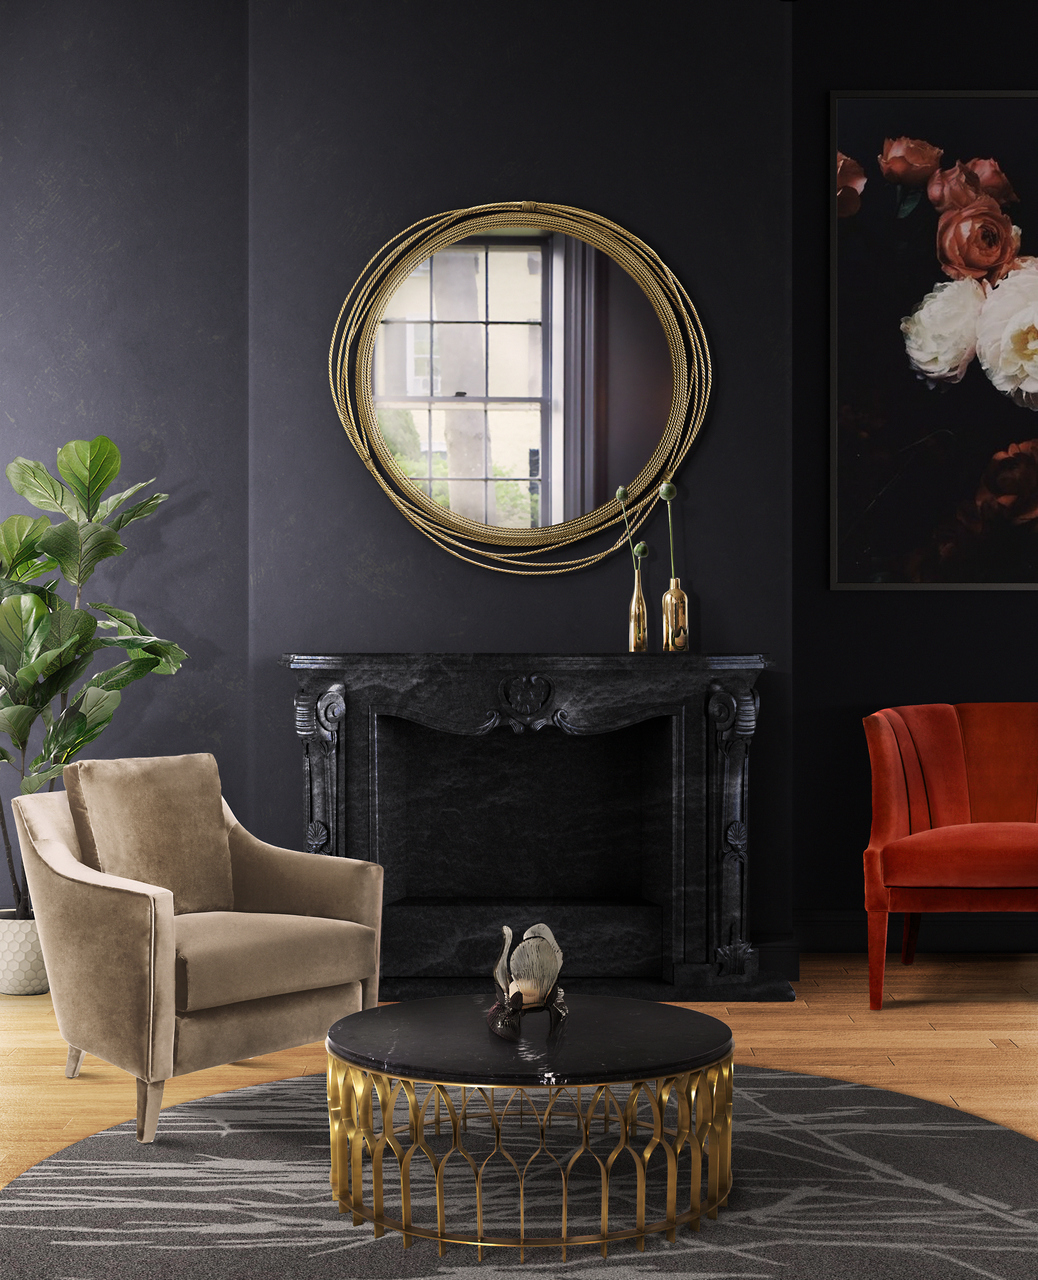 2020 Trends – Dark Tones and Neutral Colours 2020 trends 2020 Trends – Dark Tones and Neutral Colours 6